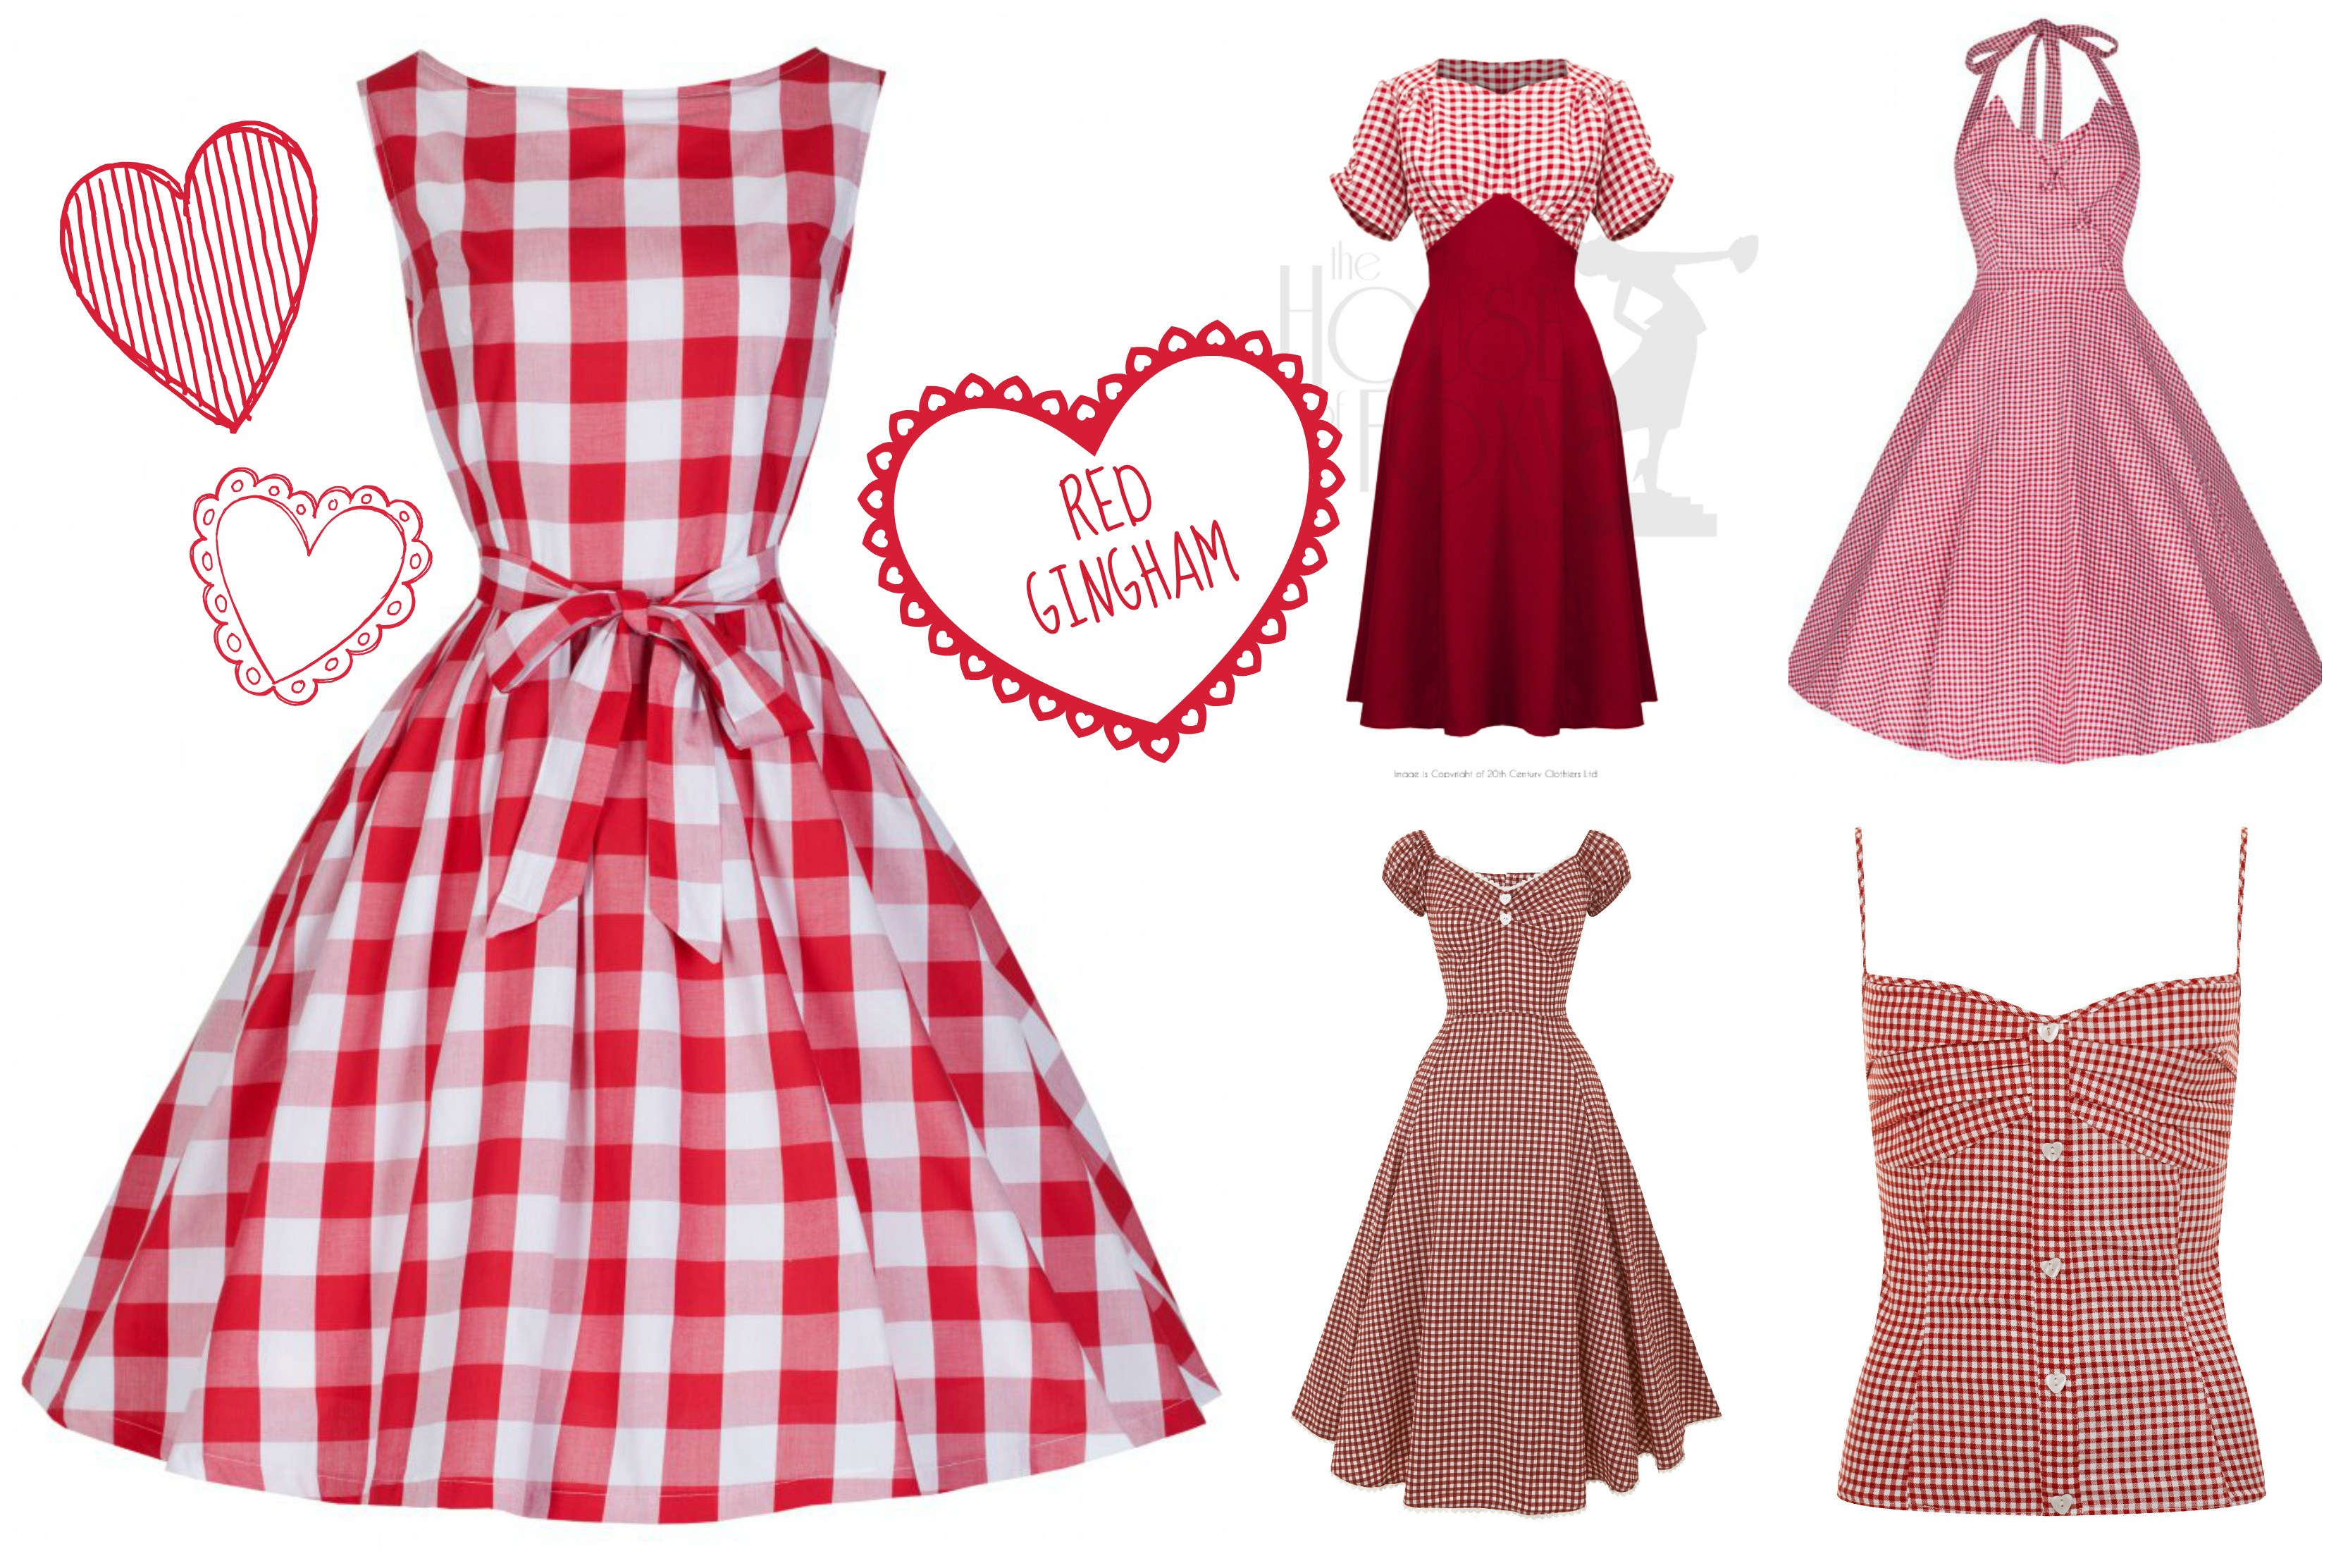 Red Gingham Vintage Style Dresses